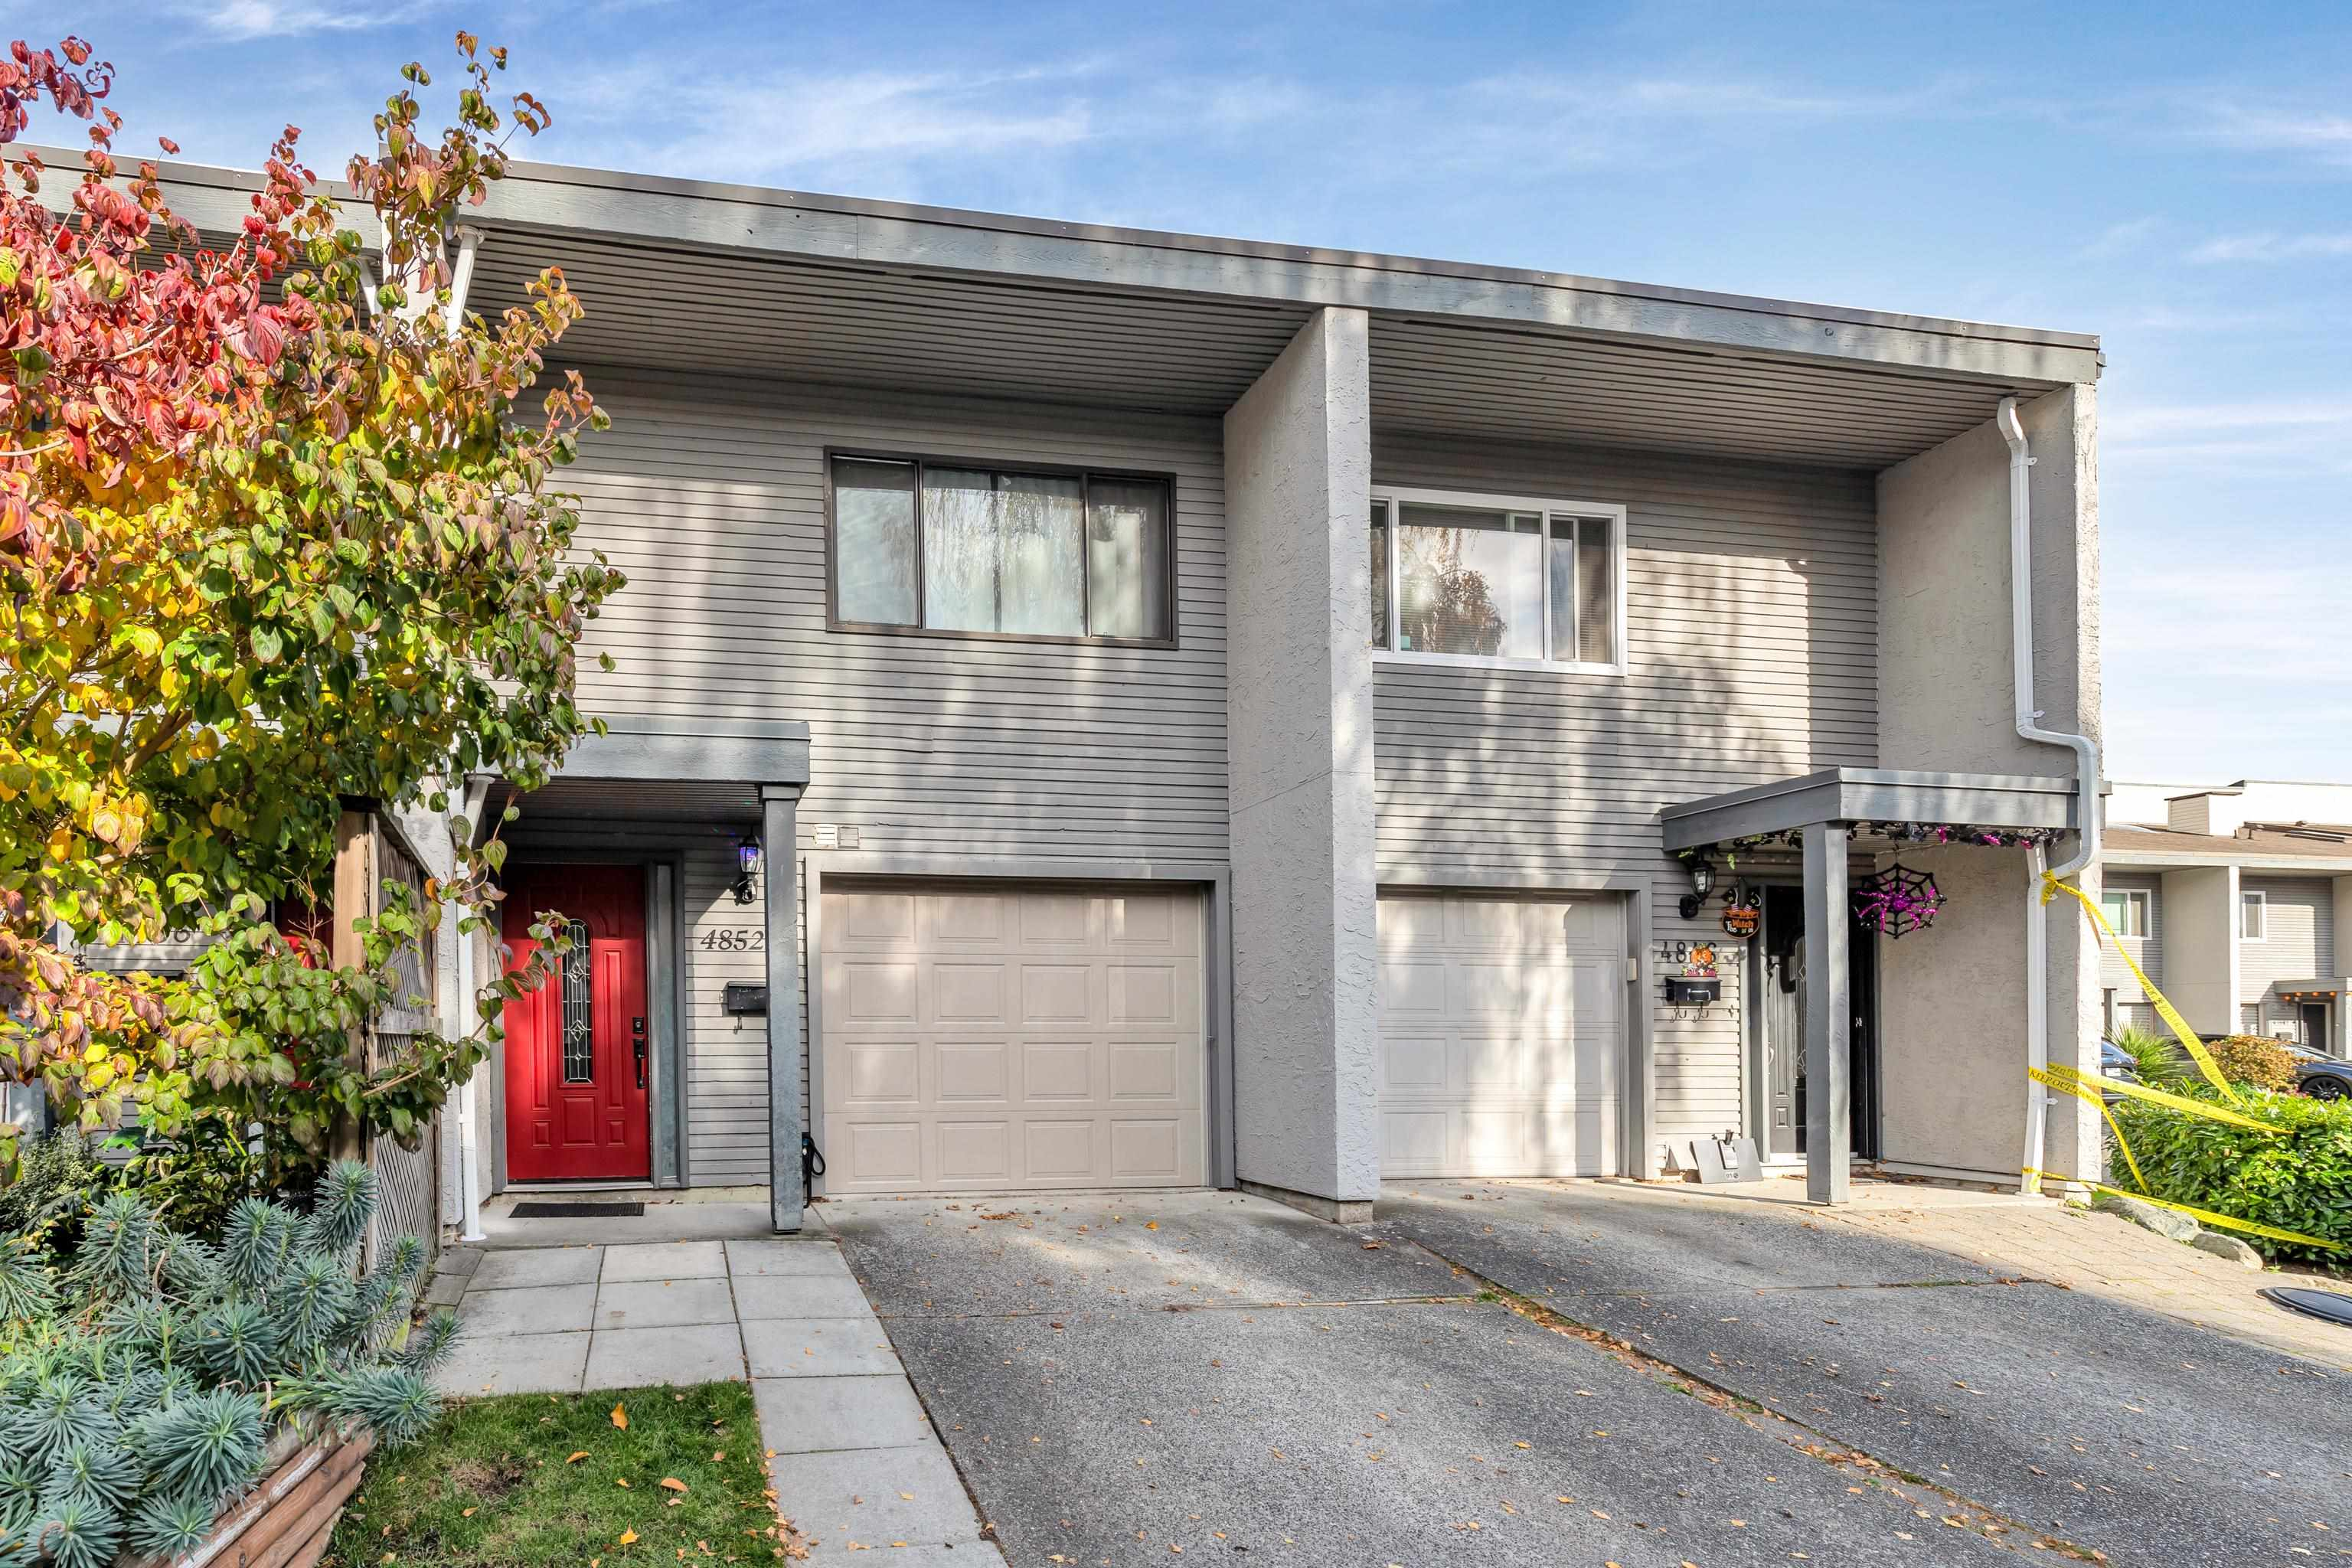 4852 TURNBUCKLE WYND - Ladner Elementary Townhouse for sale, 3 Bedrooms (R2627392)